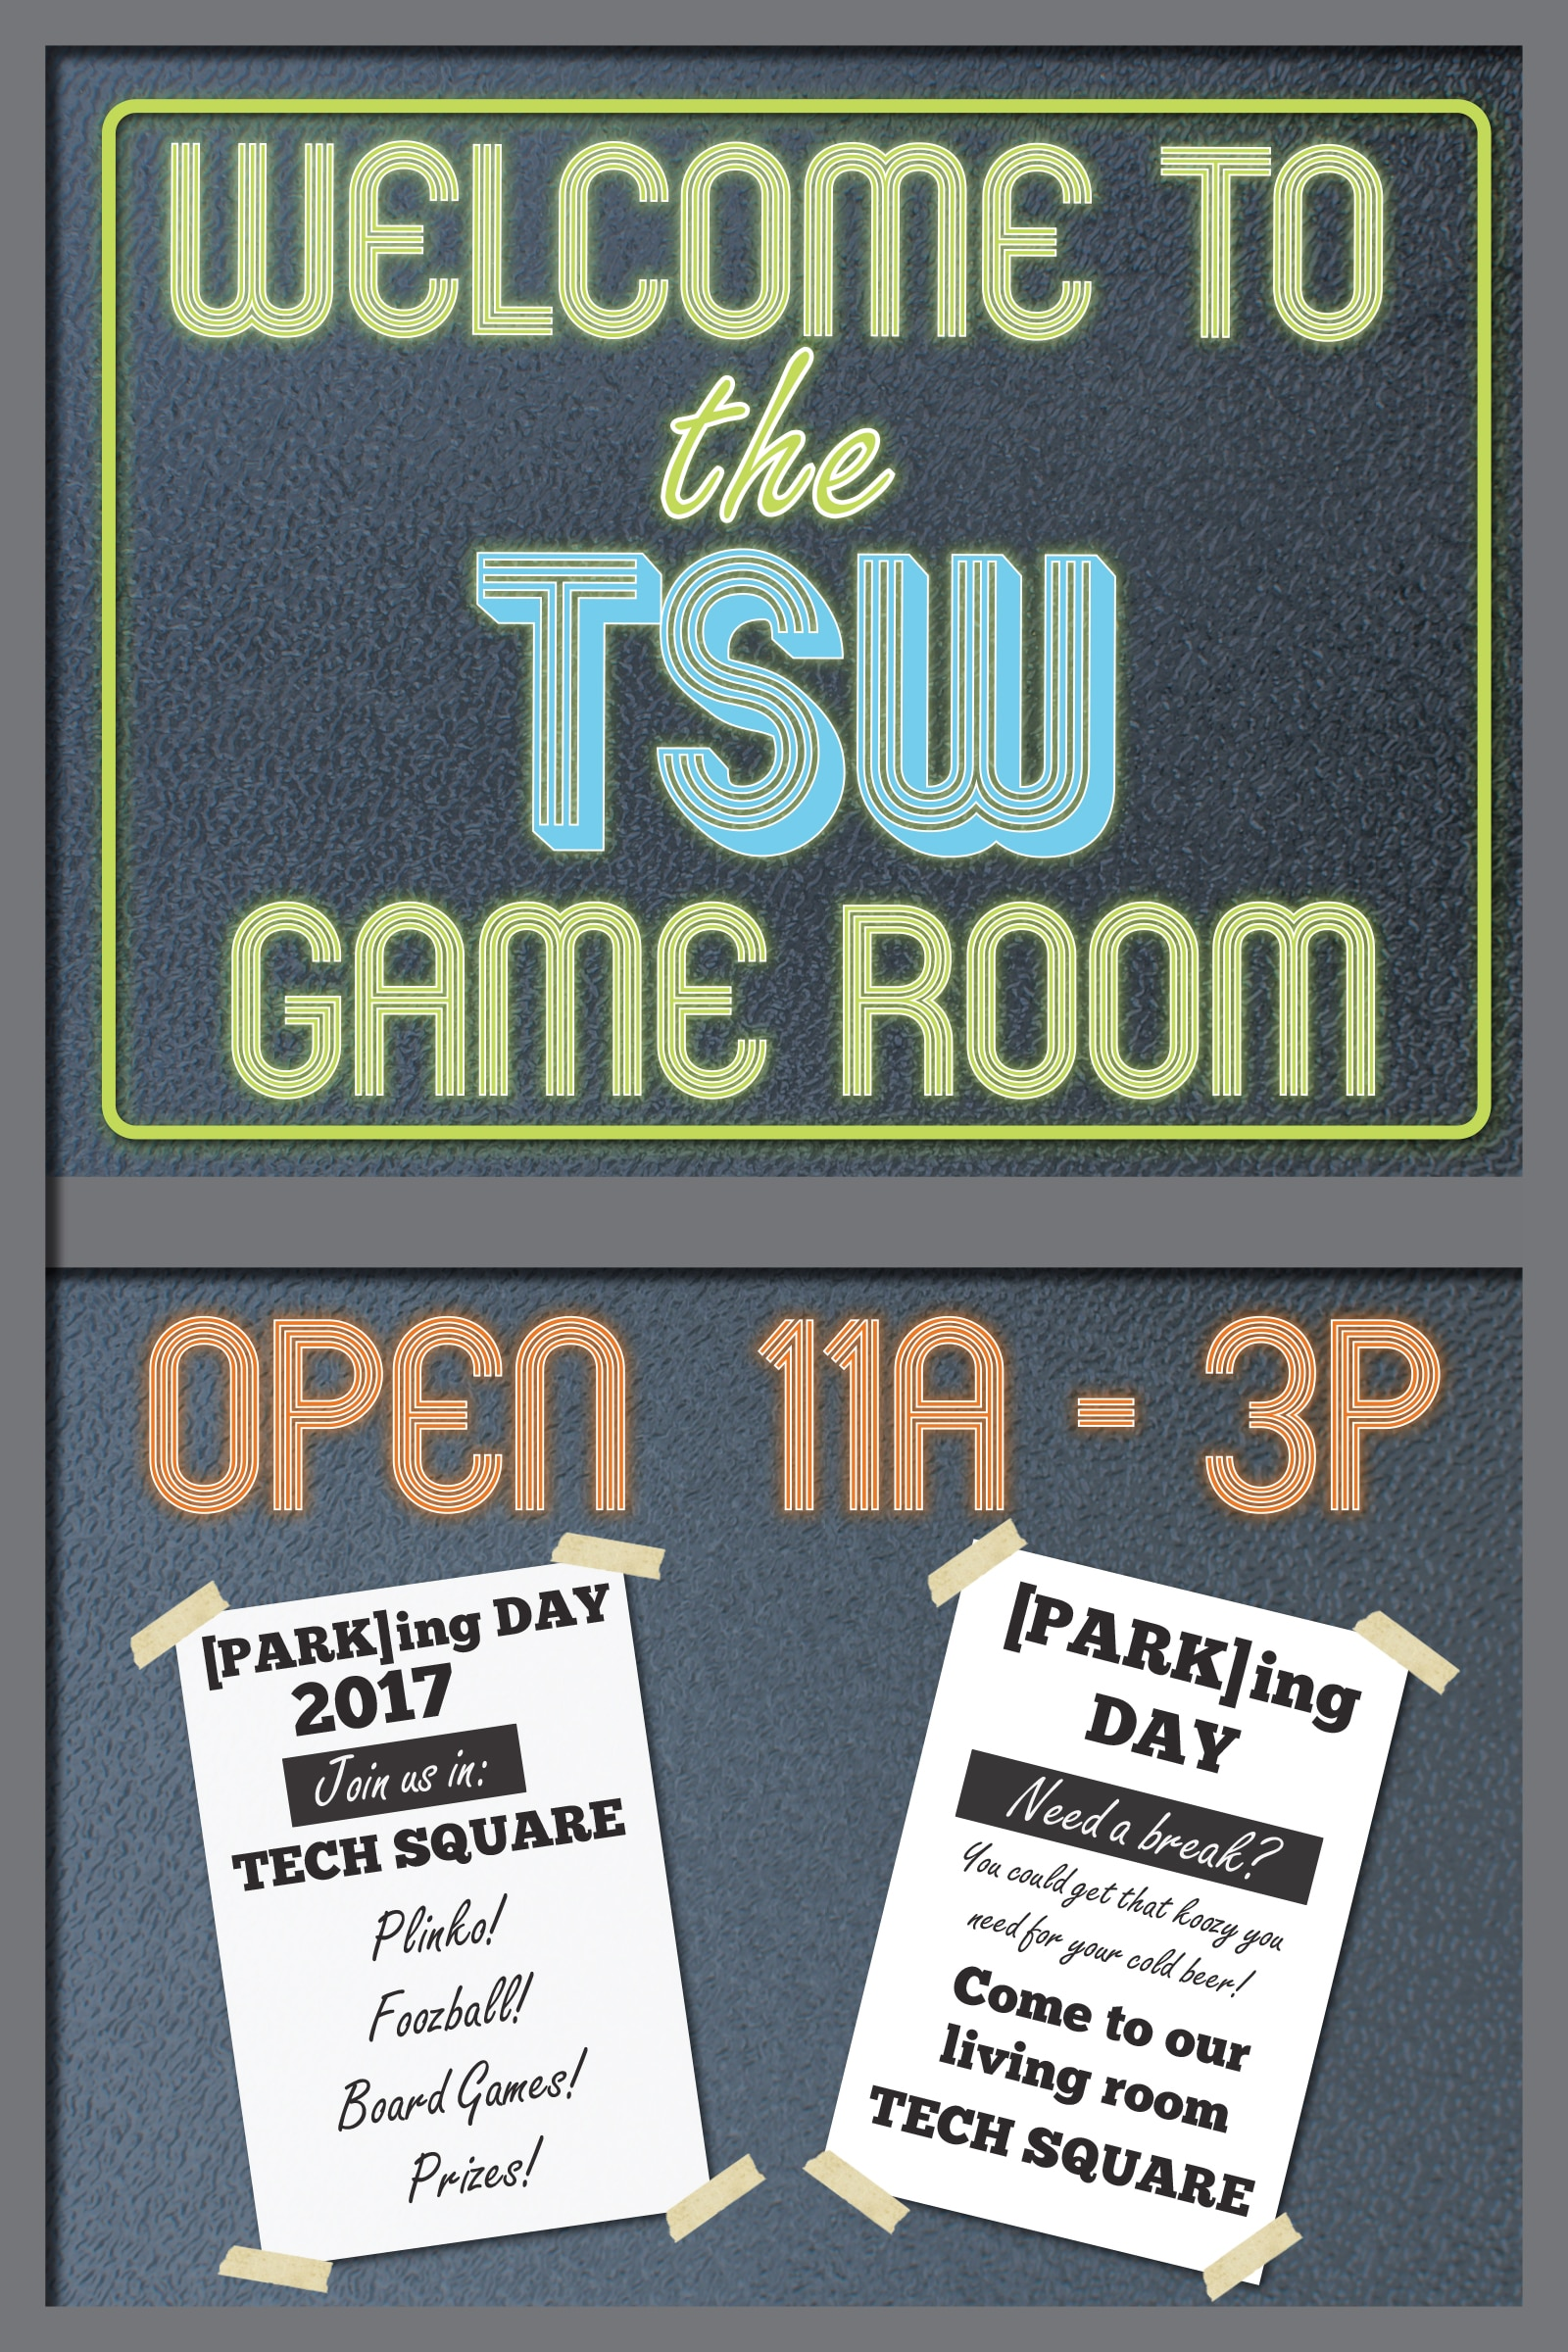 TSW Game-Room-PARKING-DAY-Poster TSW's PARK(ing) Day Recap In The News Giving Back  on-street parking onstreet parking Giving Back Tech Square game room parklet park(ing) day TSW Midtown   TSW